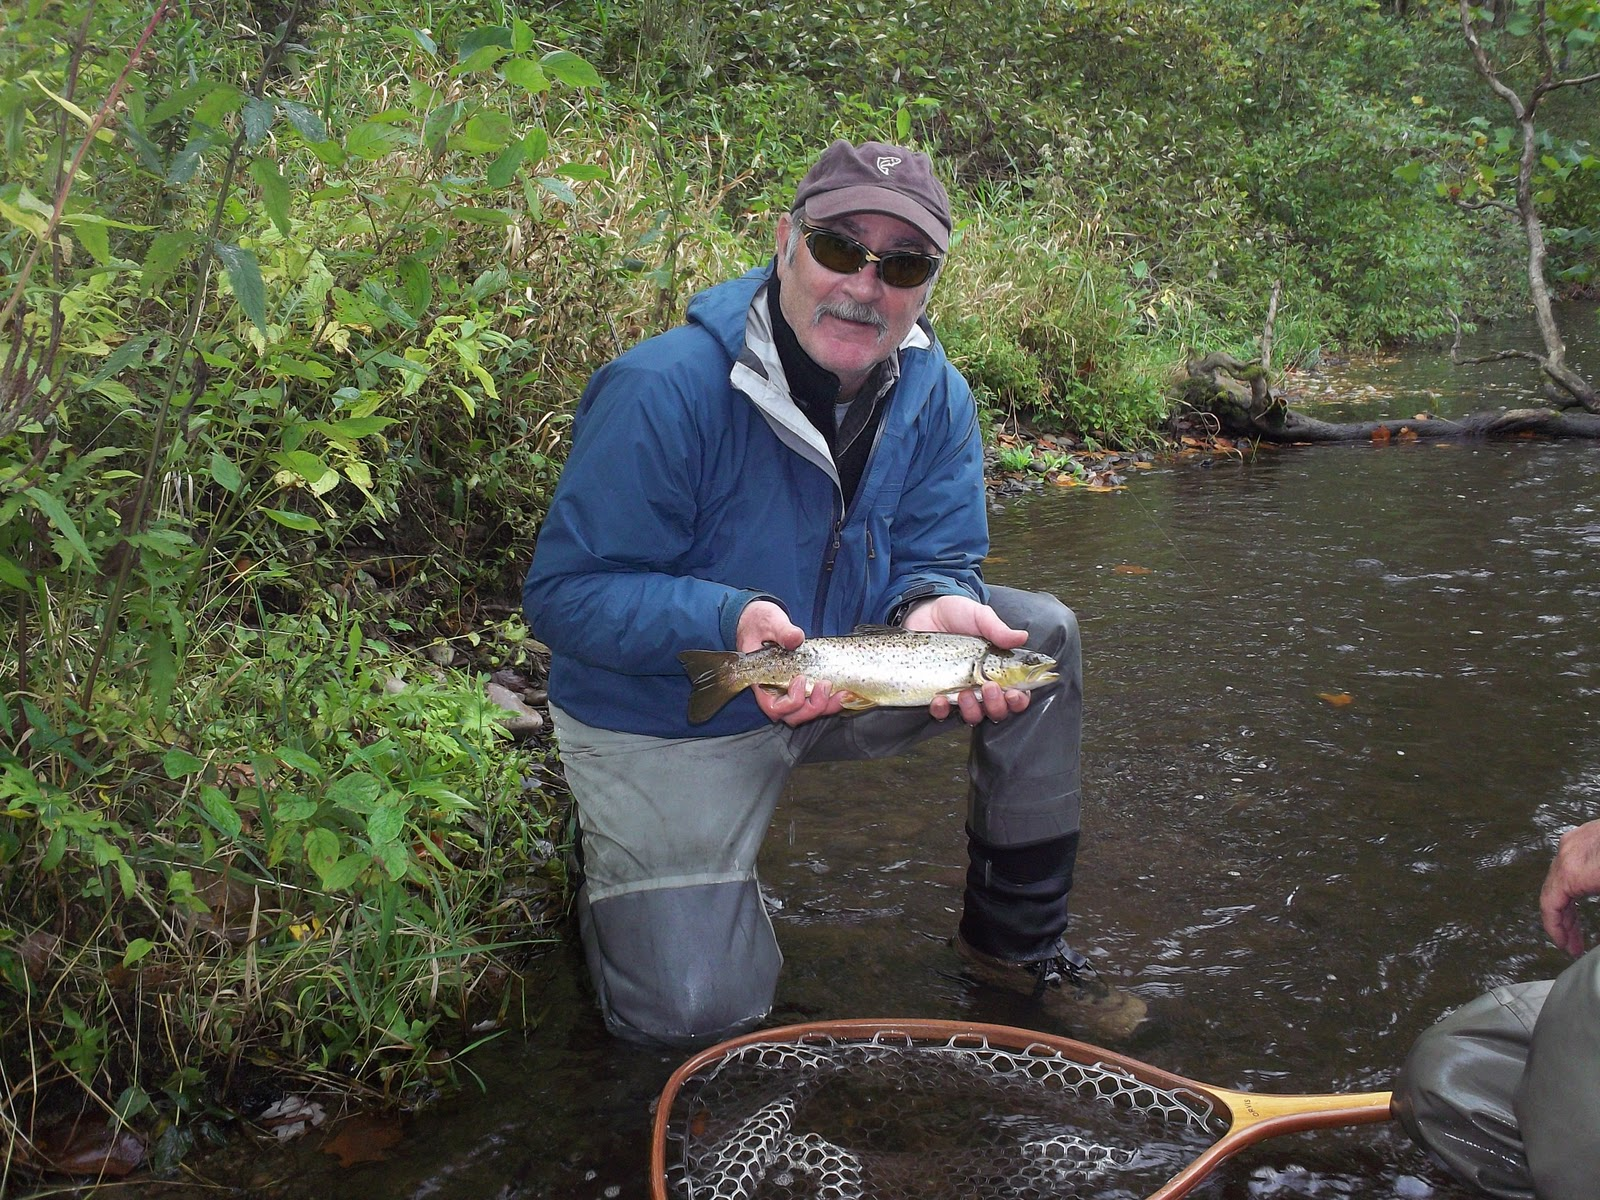 North western pennsylvania fly fishing allegheny river trout for Fishing in pennsylvania